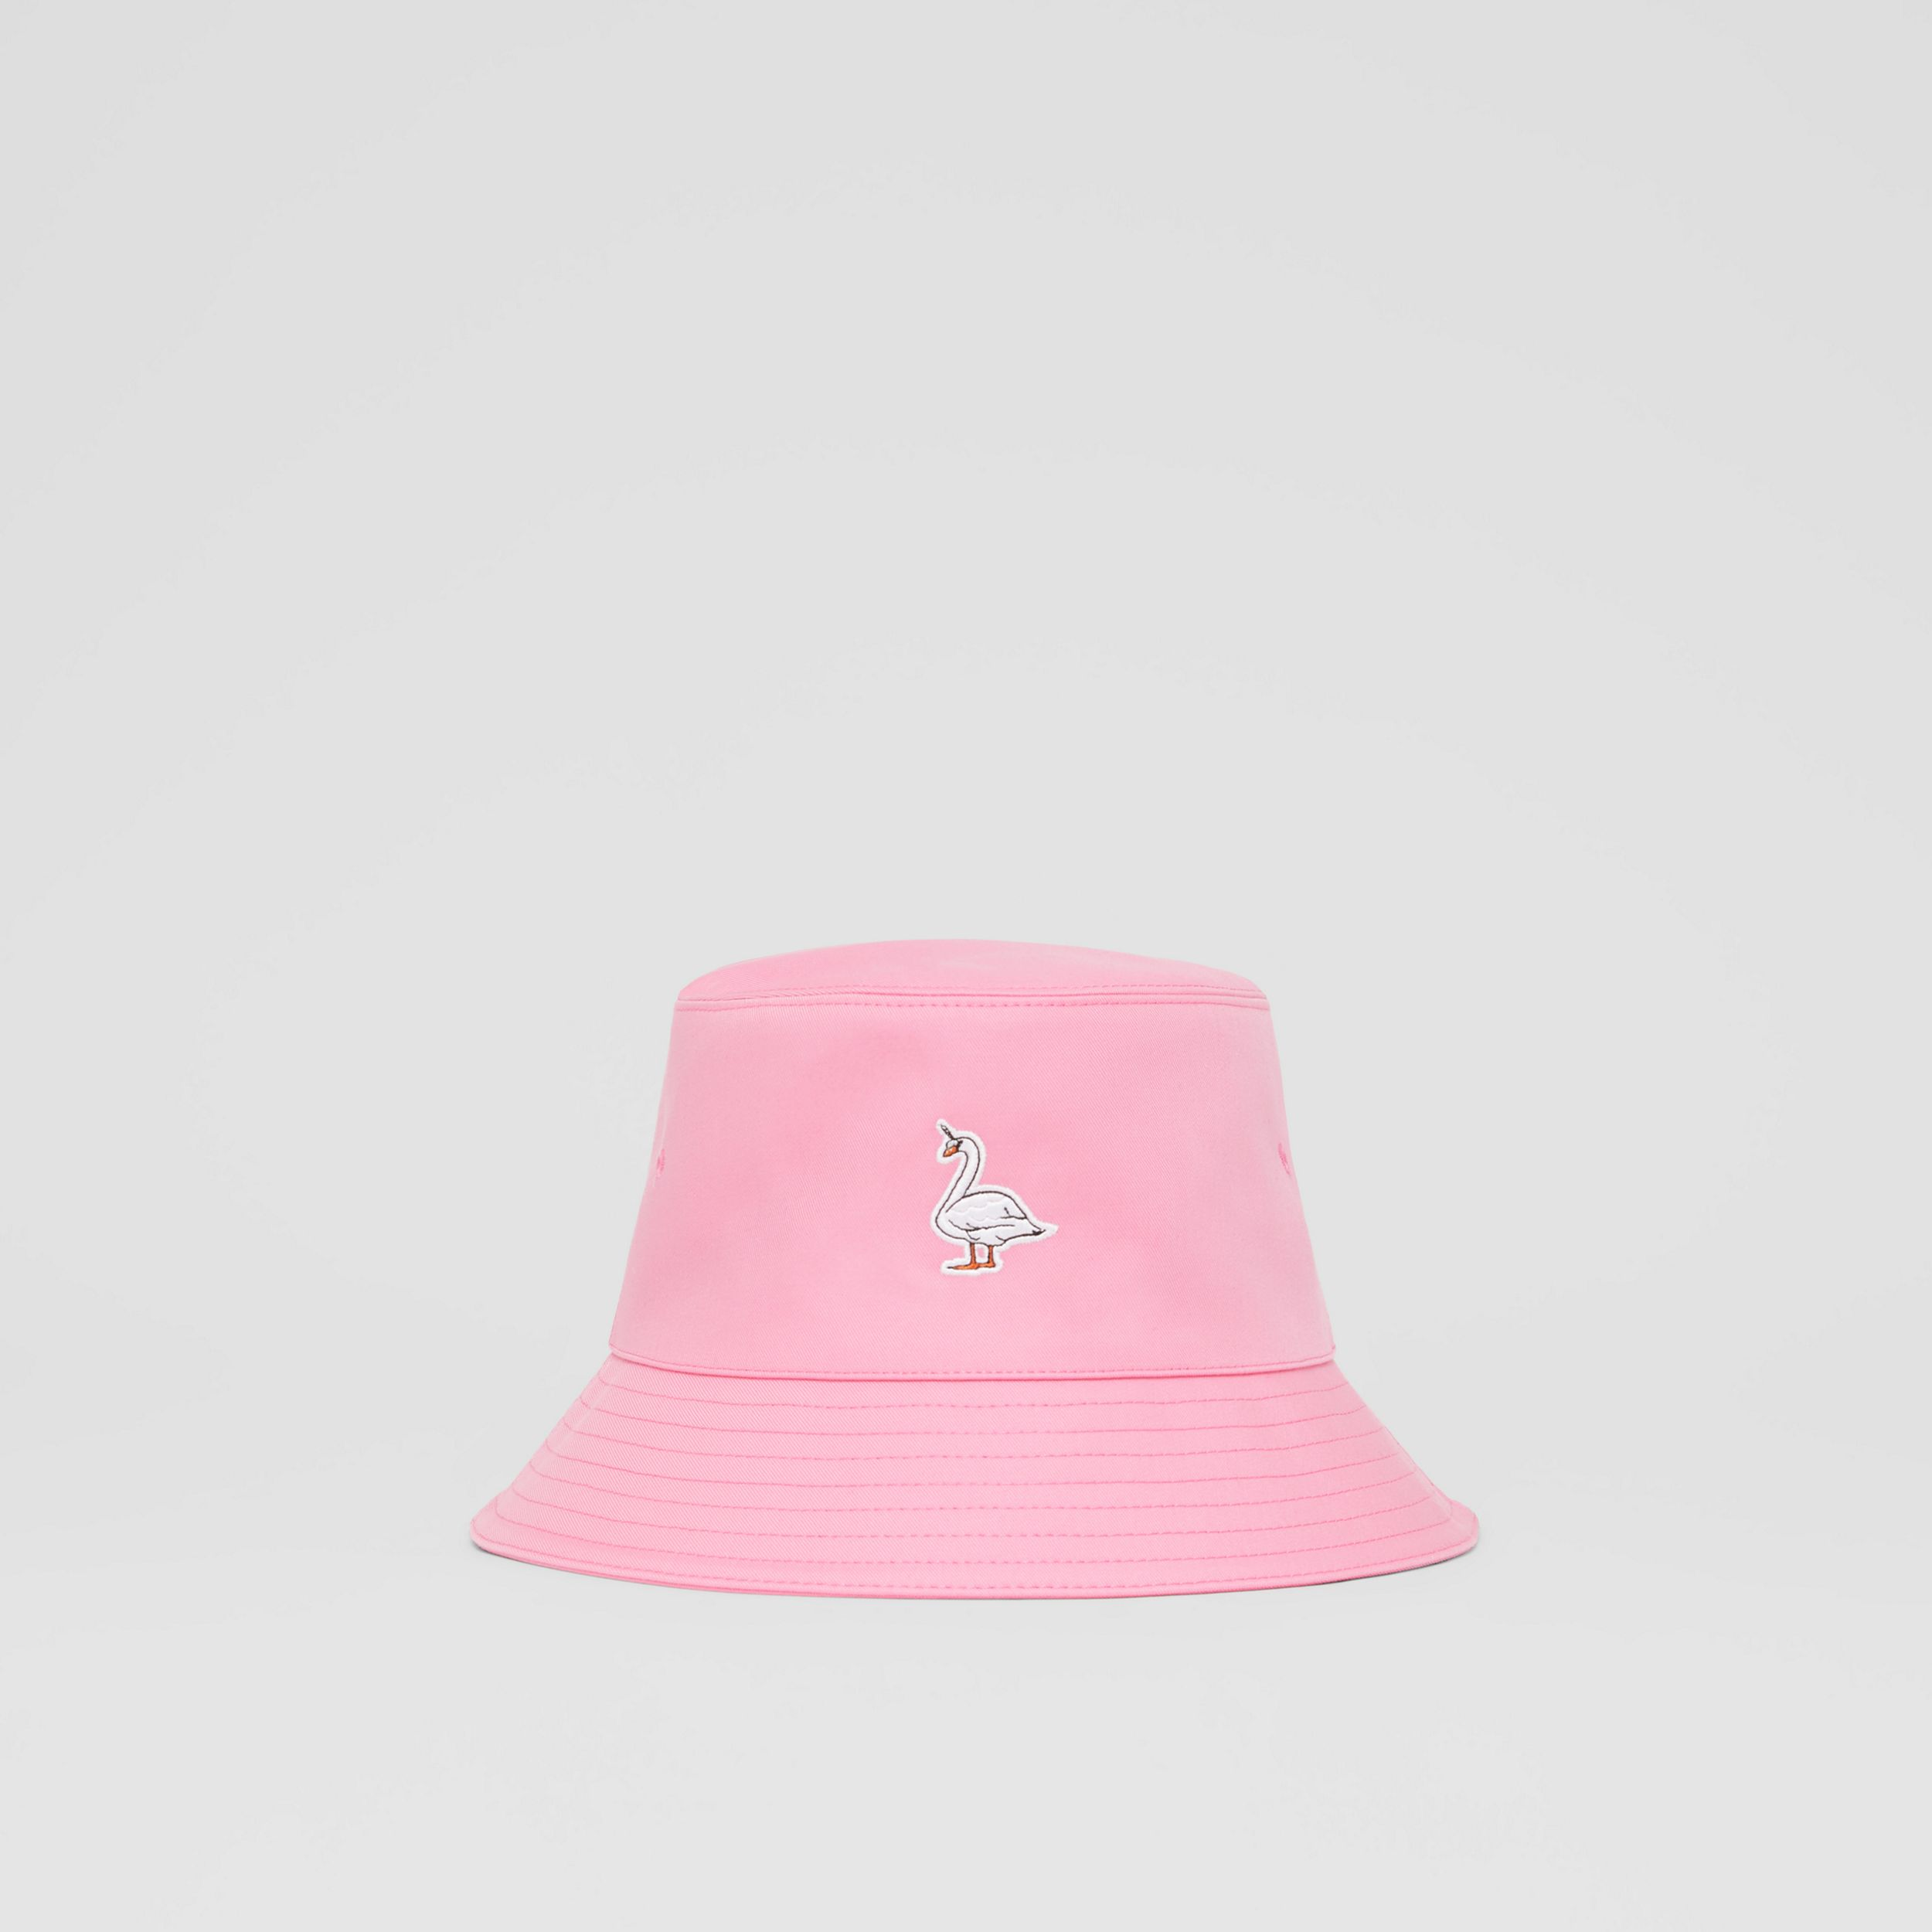 Swan Appliqué Cotton Twill Bucket Hat in Bubblegum Pink | Burberry - 1